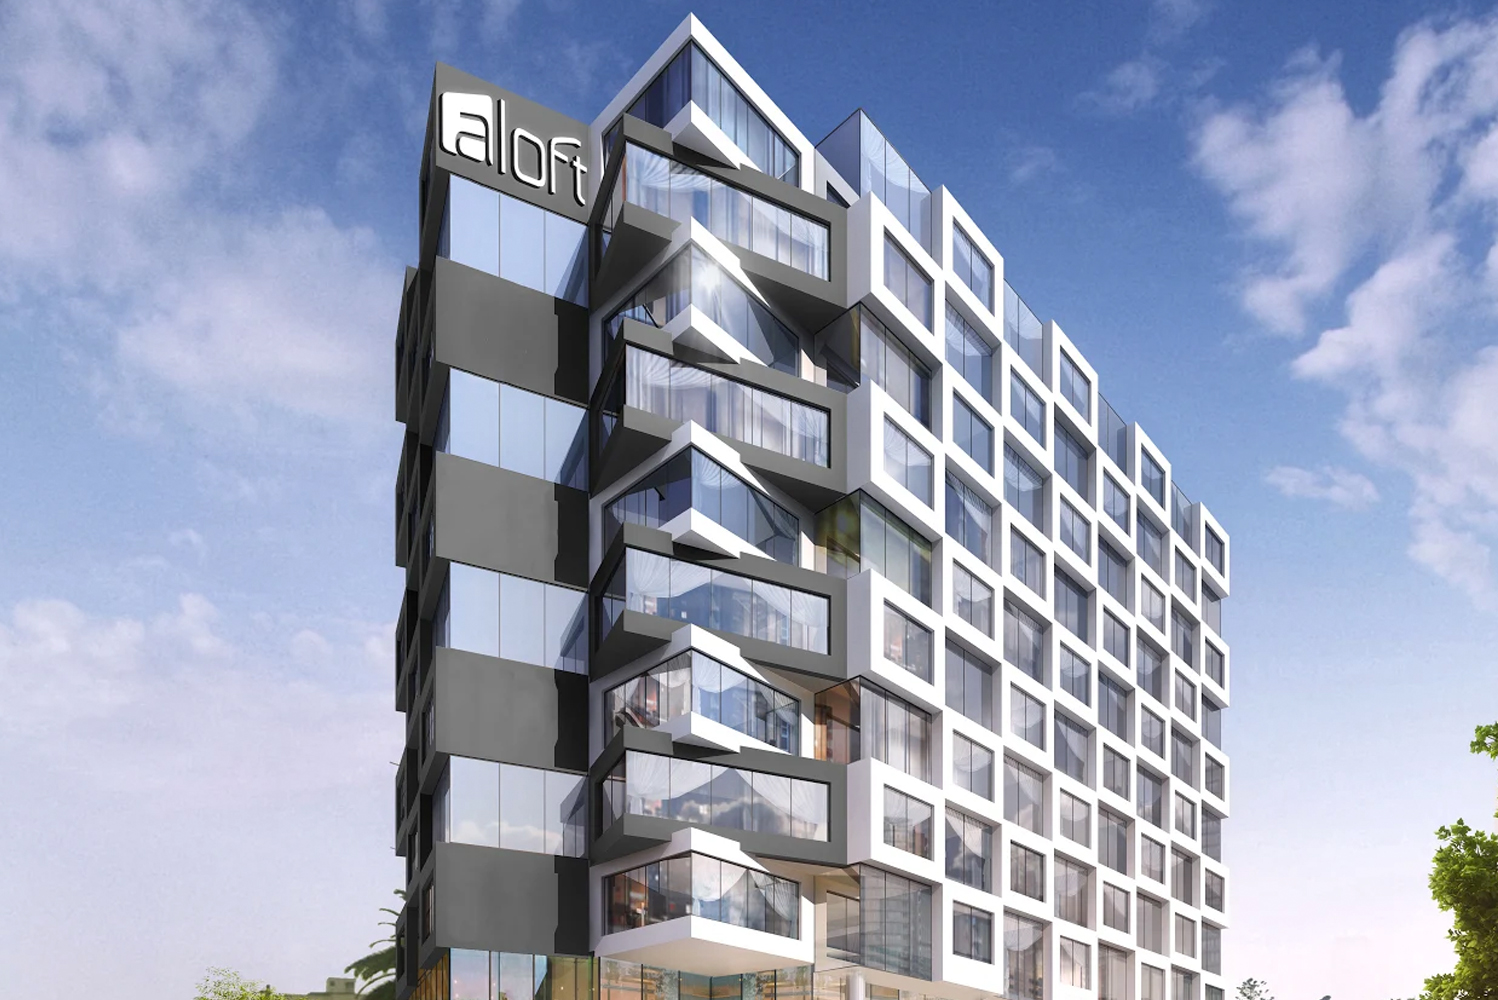 Libertador Hotels, Resorts & Spas opened the 164-room Aloft Lima in the Miraflores district.